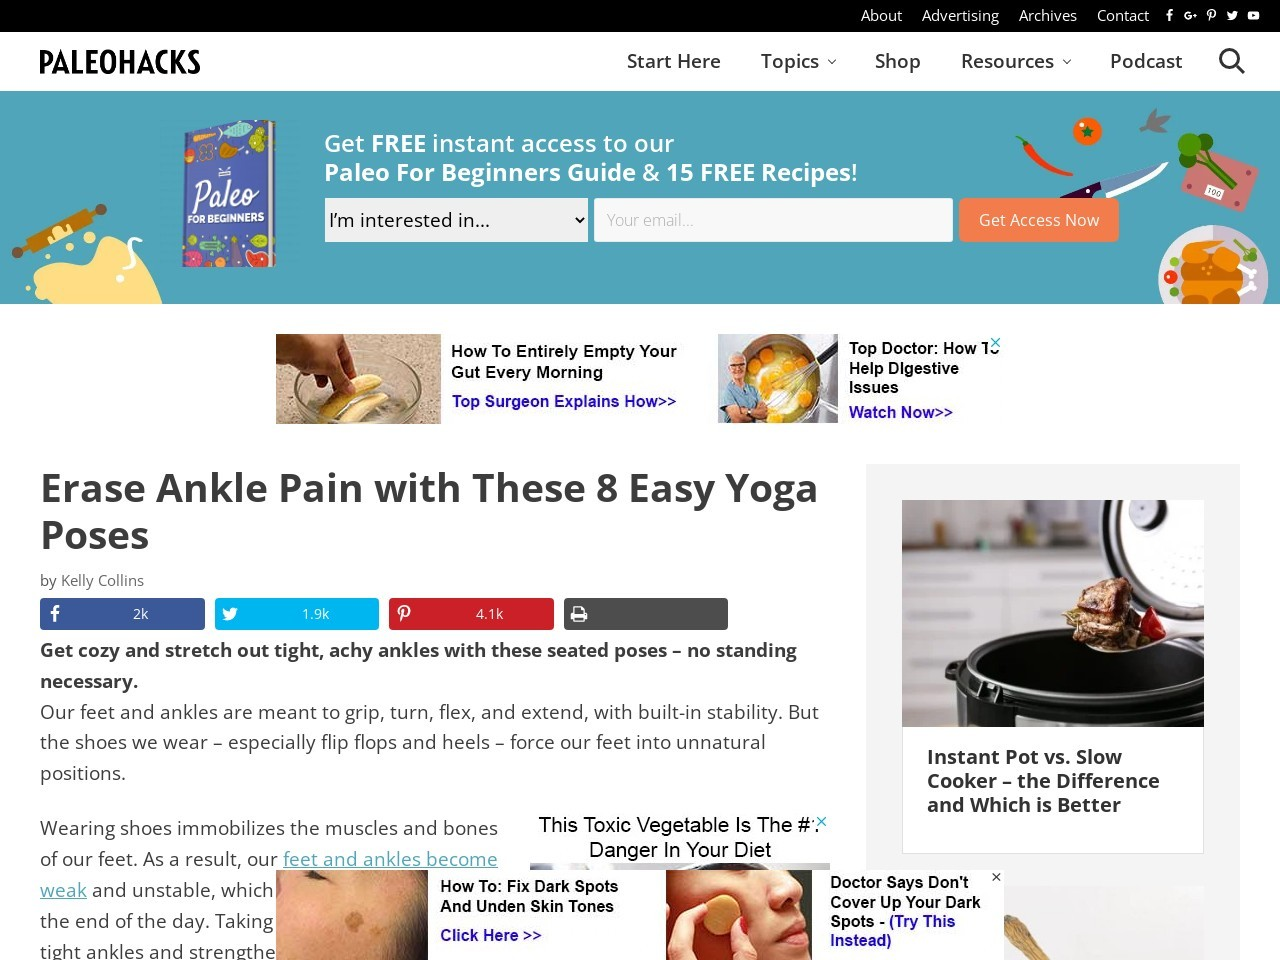 Erase Ankle Pain with These 8 Easy Yoga Poses